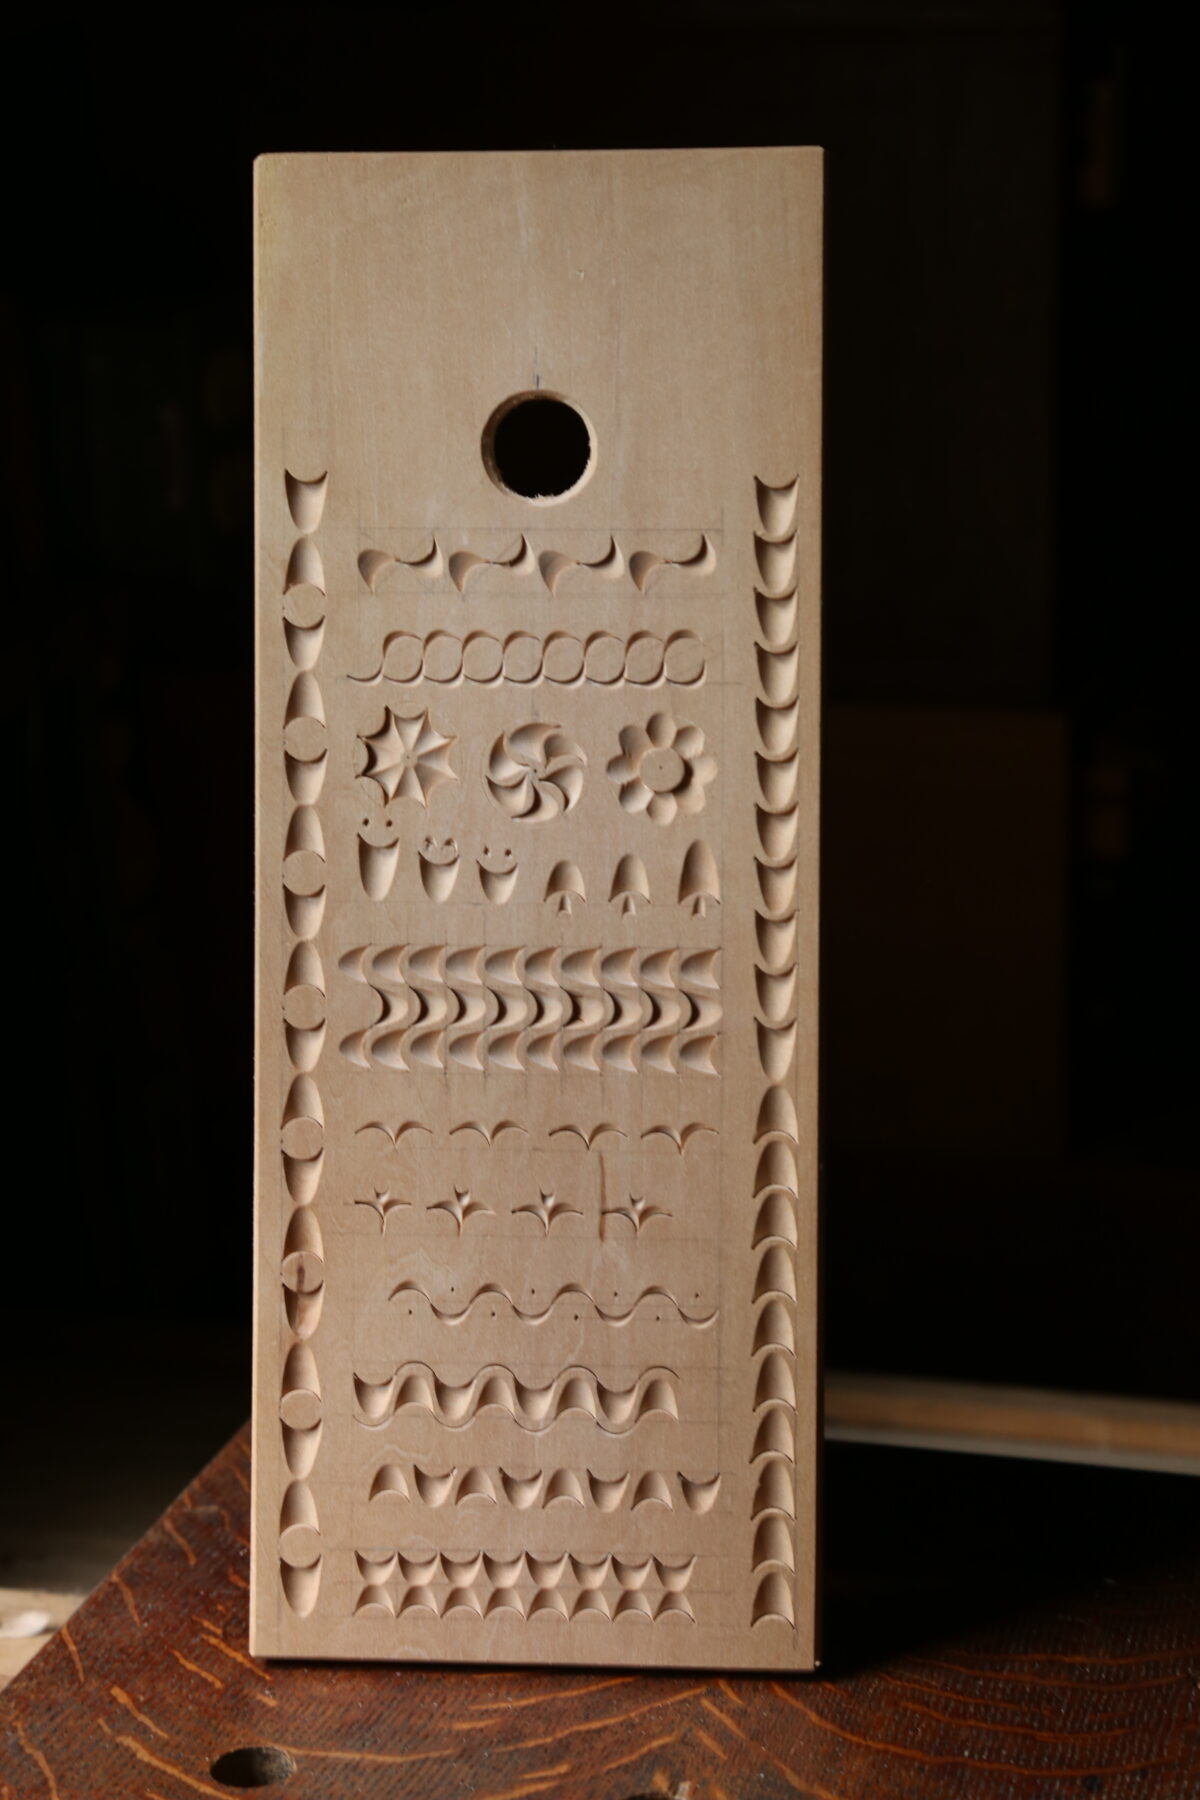 A narrow basswood board featuring different patterns carved with a single gouge. Light rakes across it from the left, showing deep shadow contrasting against the light basswood.